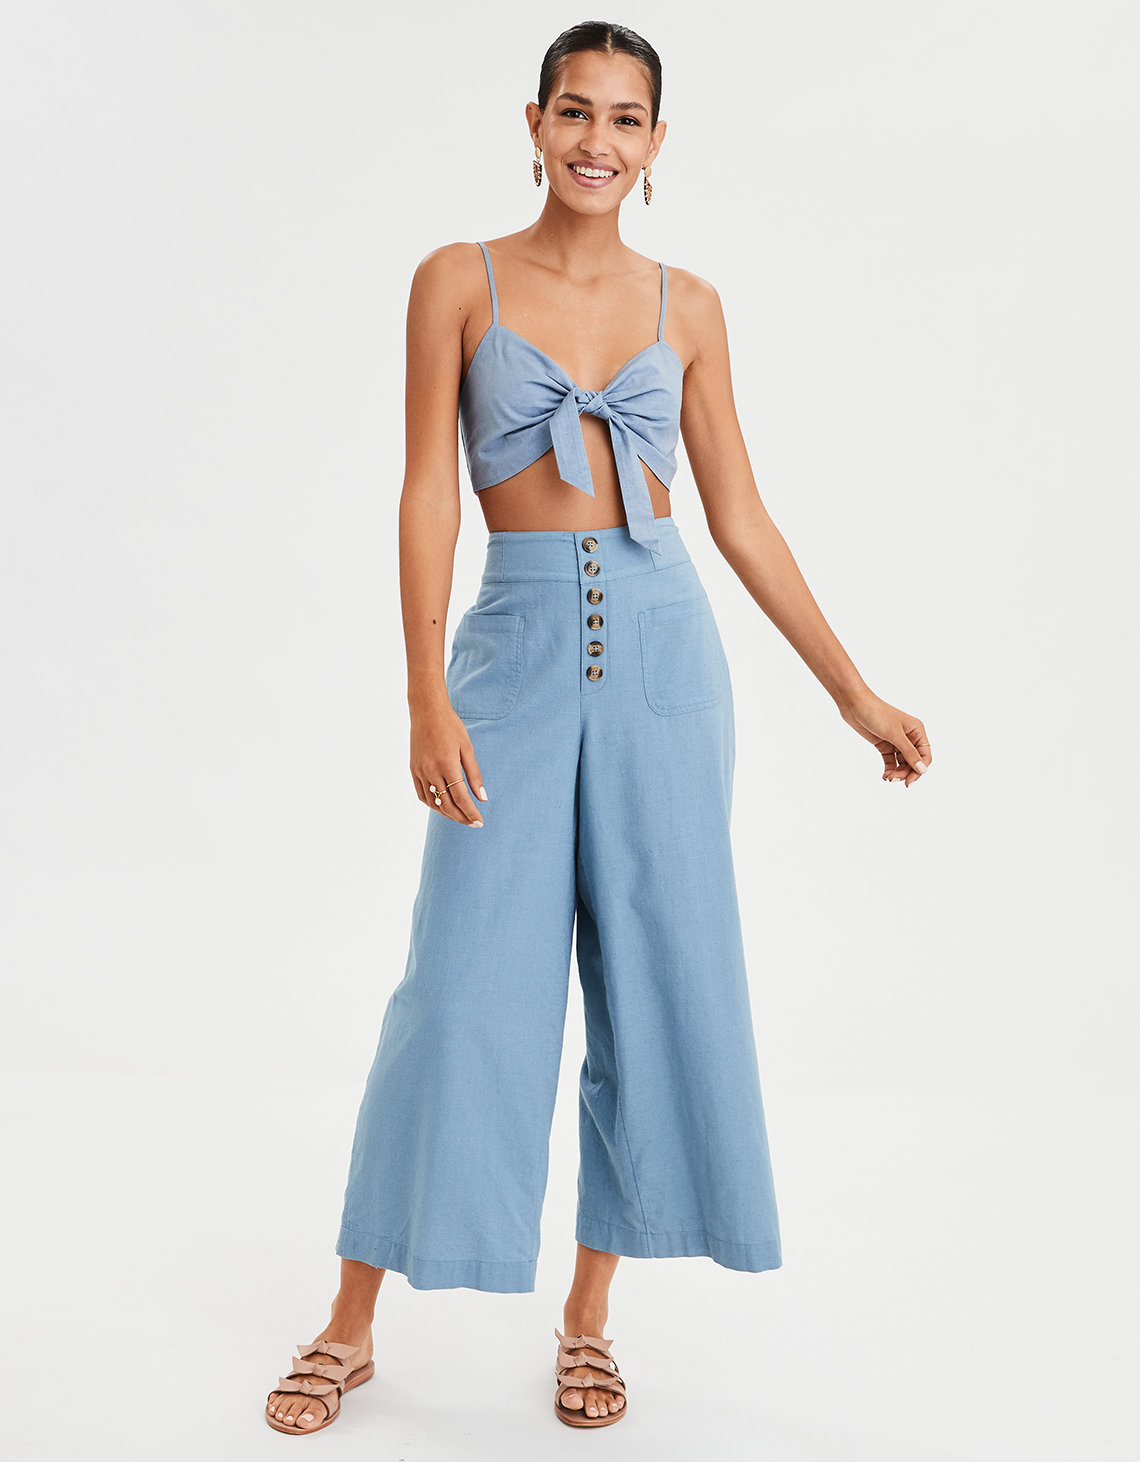 c9f6052709 AE Knot Front Bralette Top